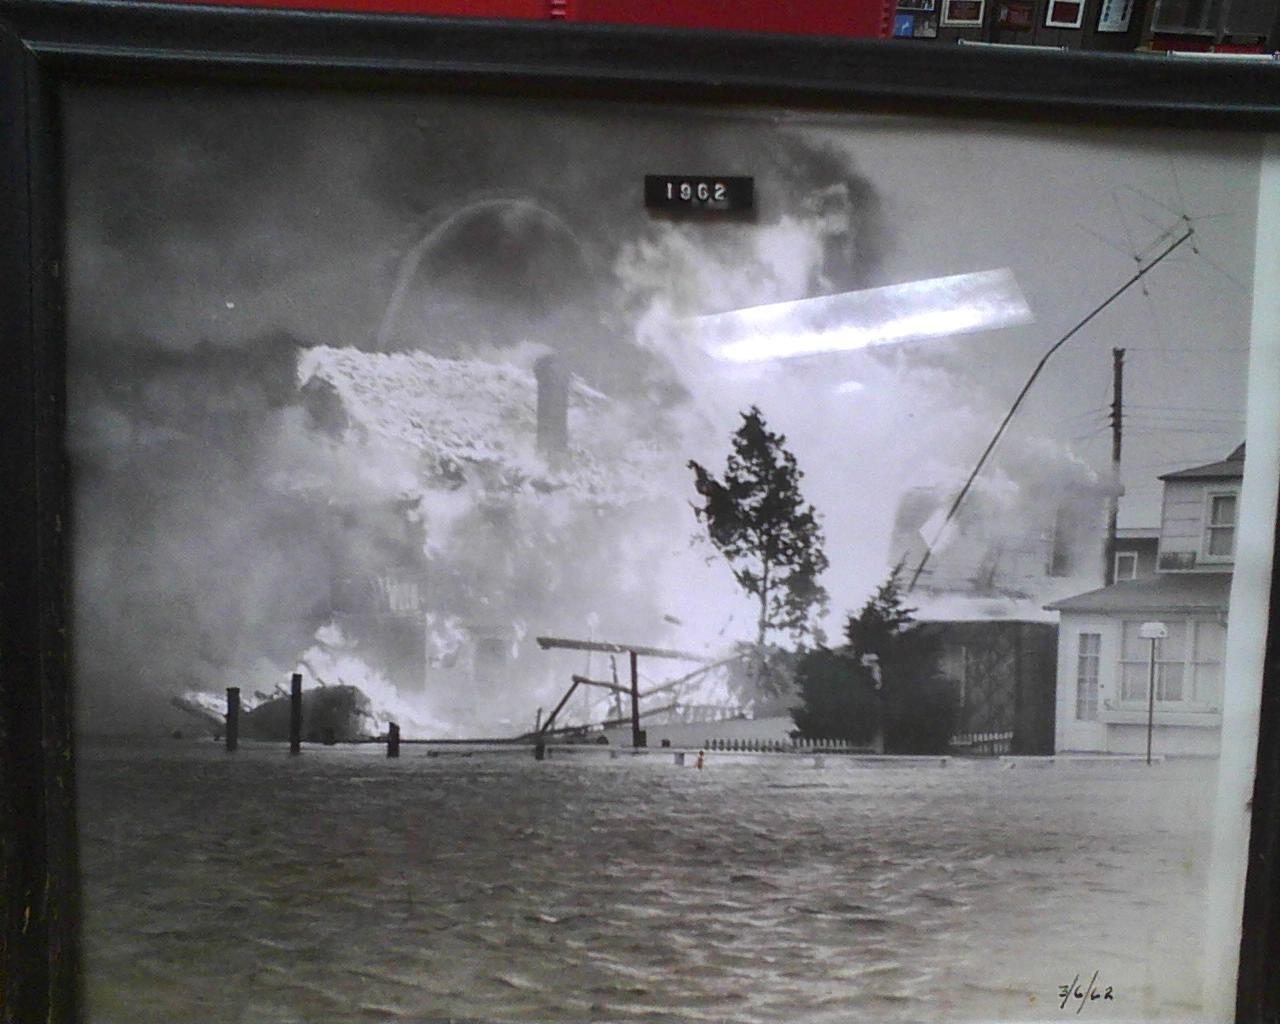 Fire during 62 Flood